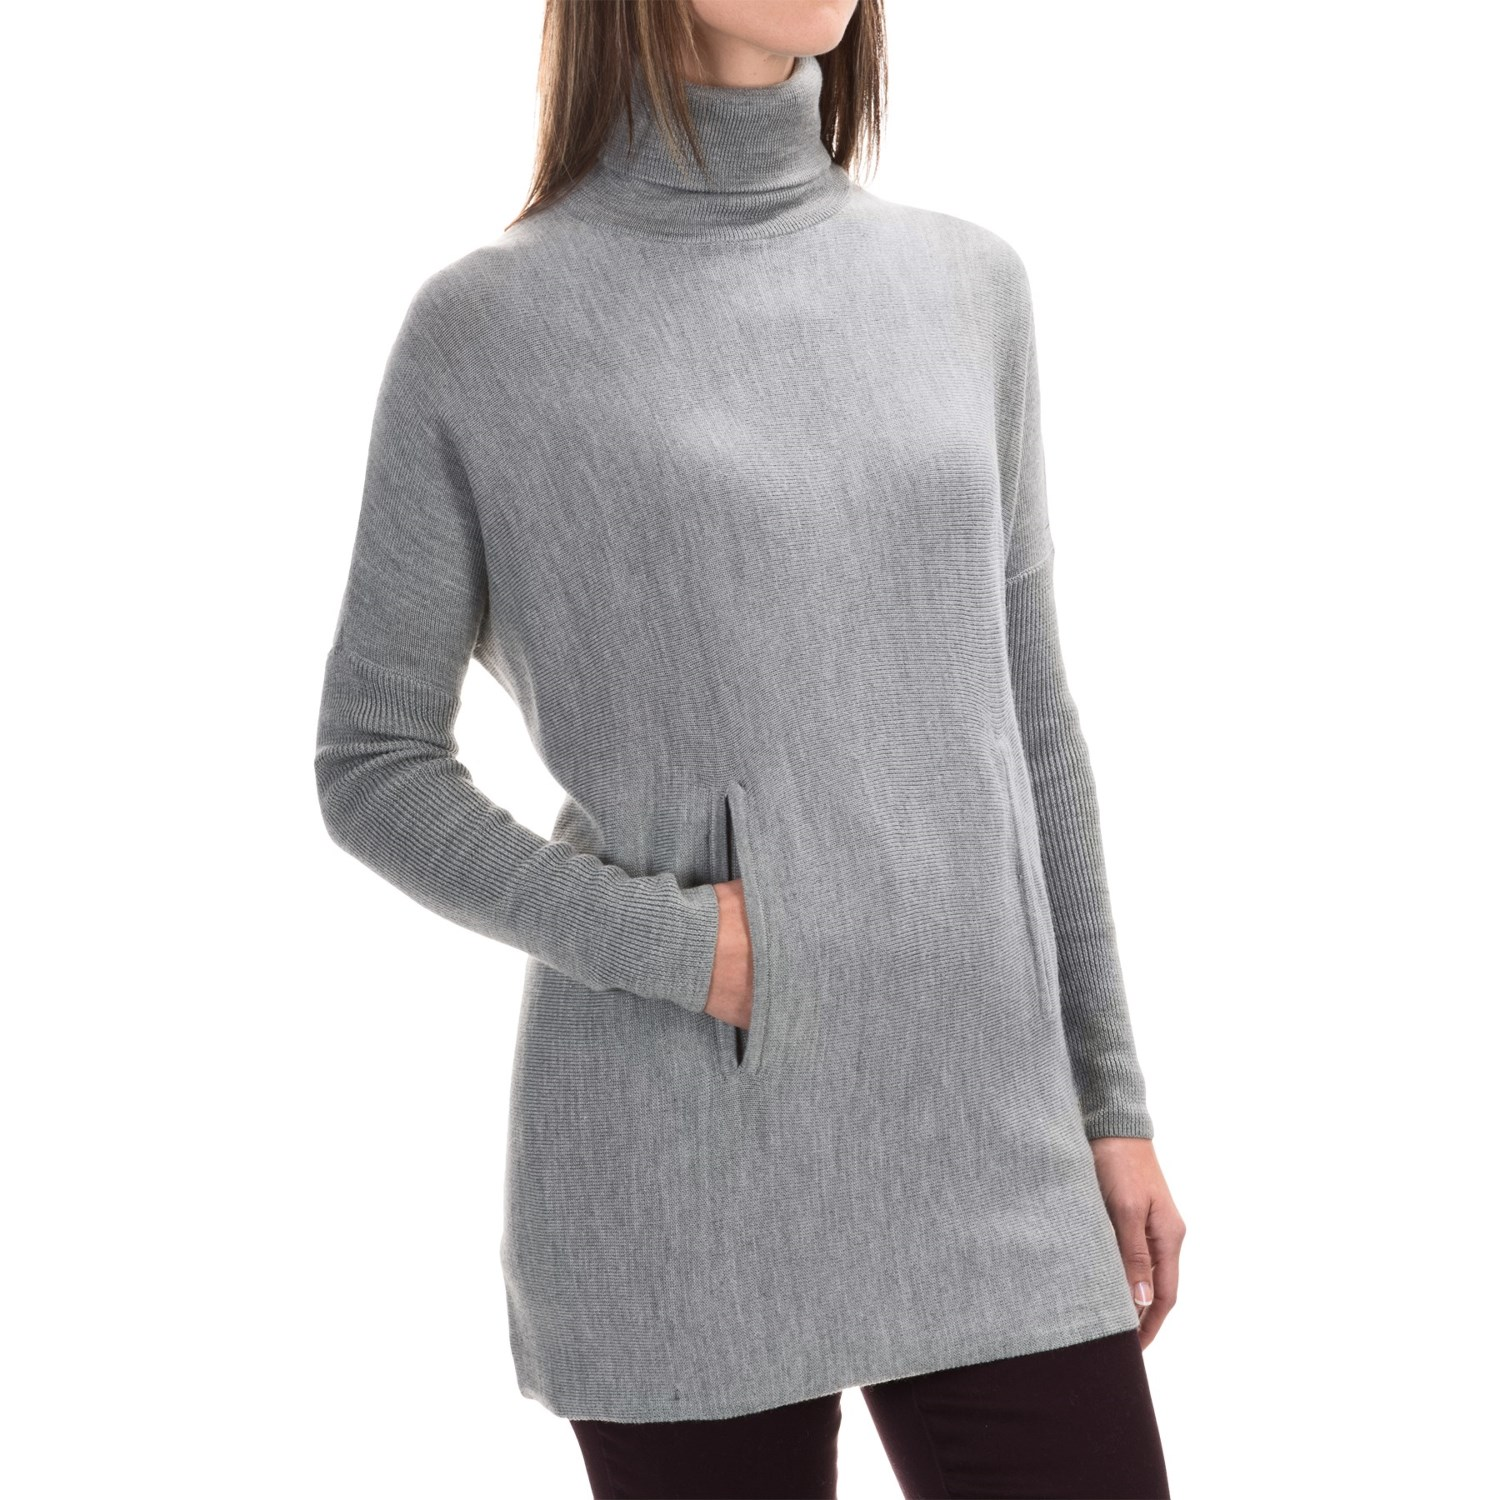 High Collar Aran Zipper Sweater Coat is made from % Irish Merino Wool Shop Best Sellers · Deals of the Day · Fast Shipping · Read Ratings & ReviewsBrands: Polà Ralph Laurên, Polo Ralph Lauren, WoolX, Pendleton, KNITBEST and more.